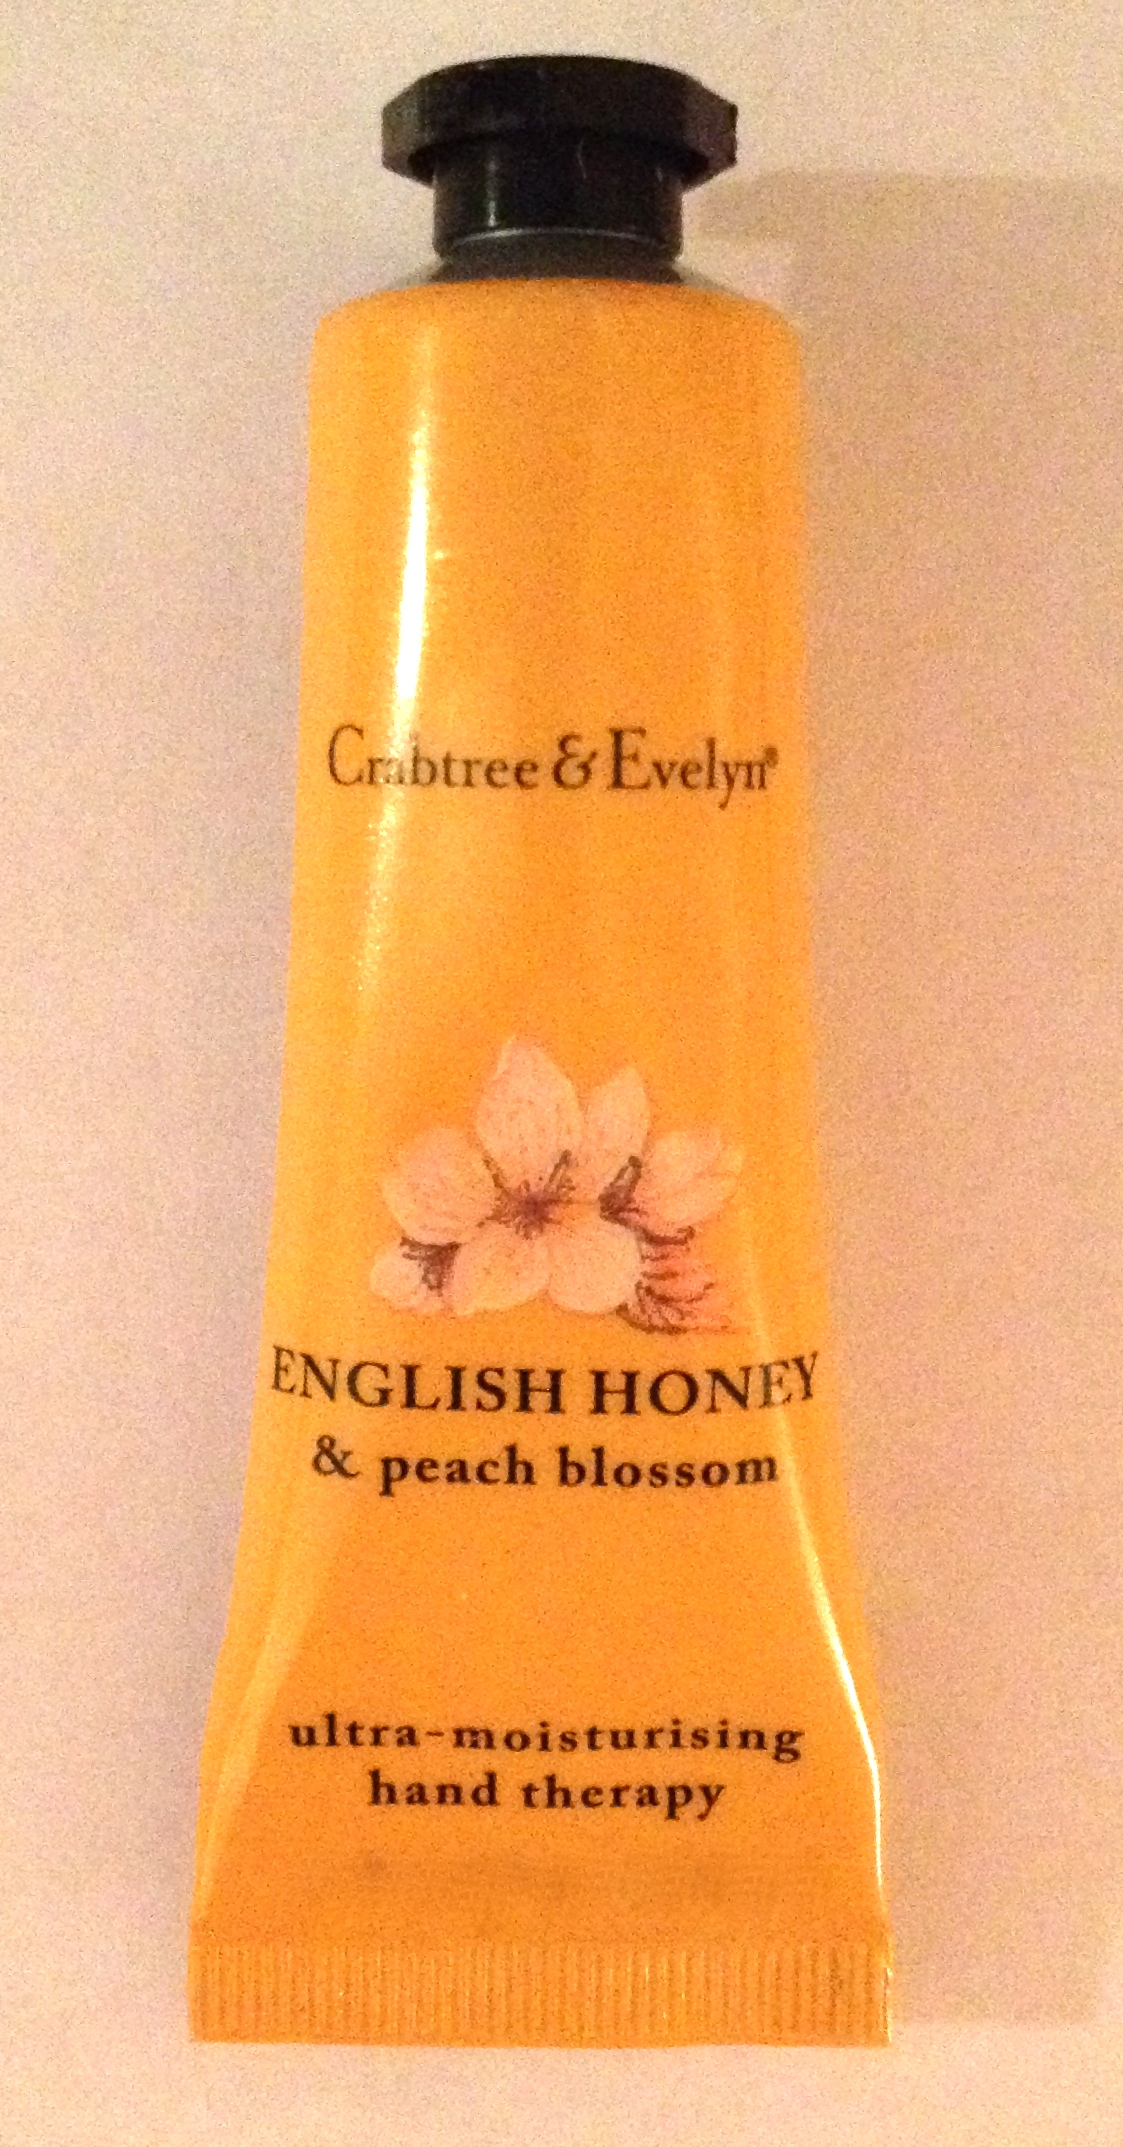 Crabtree and Evelyn Honey and Peach Blossom hand cream